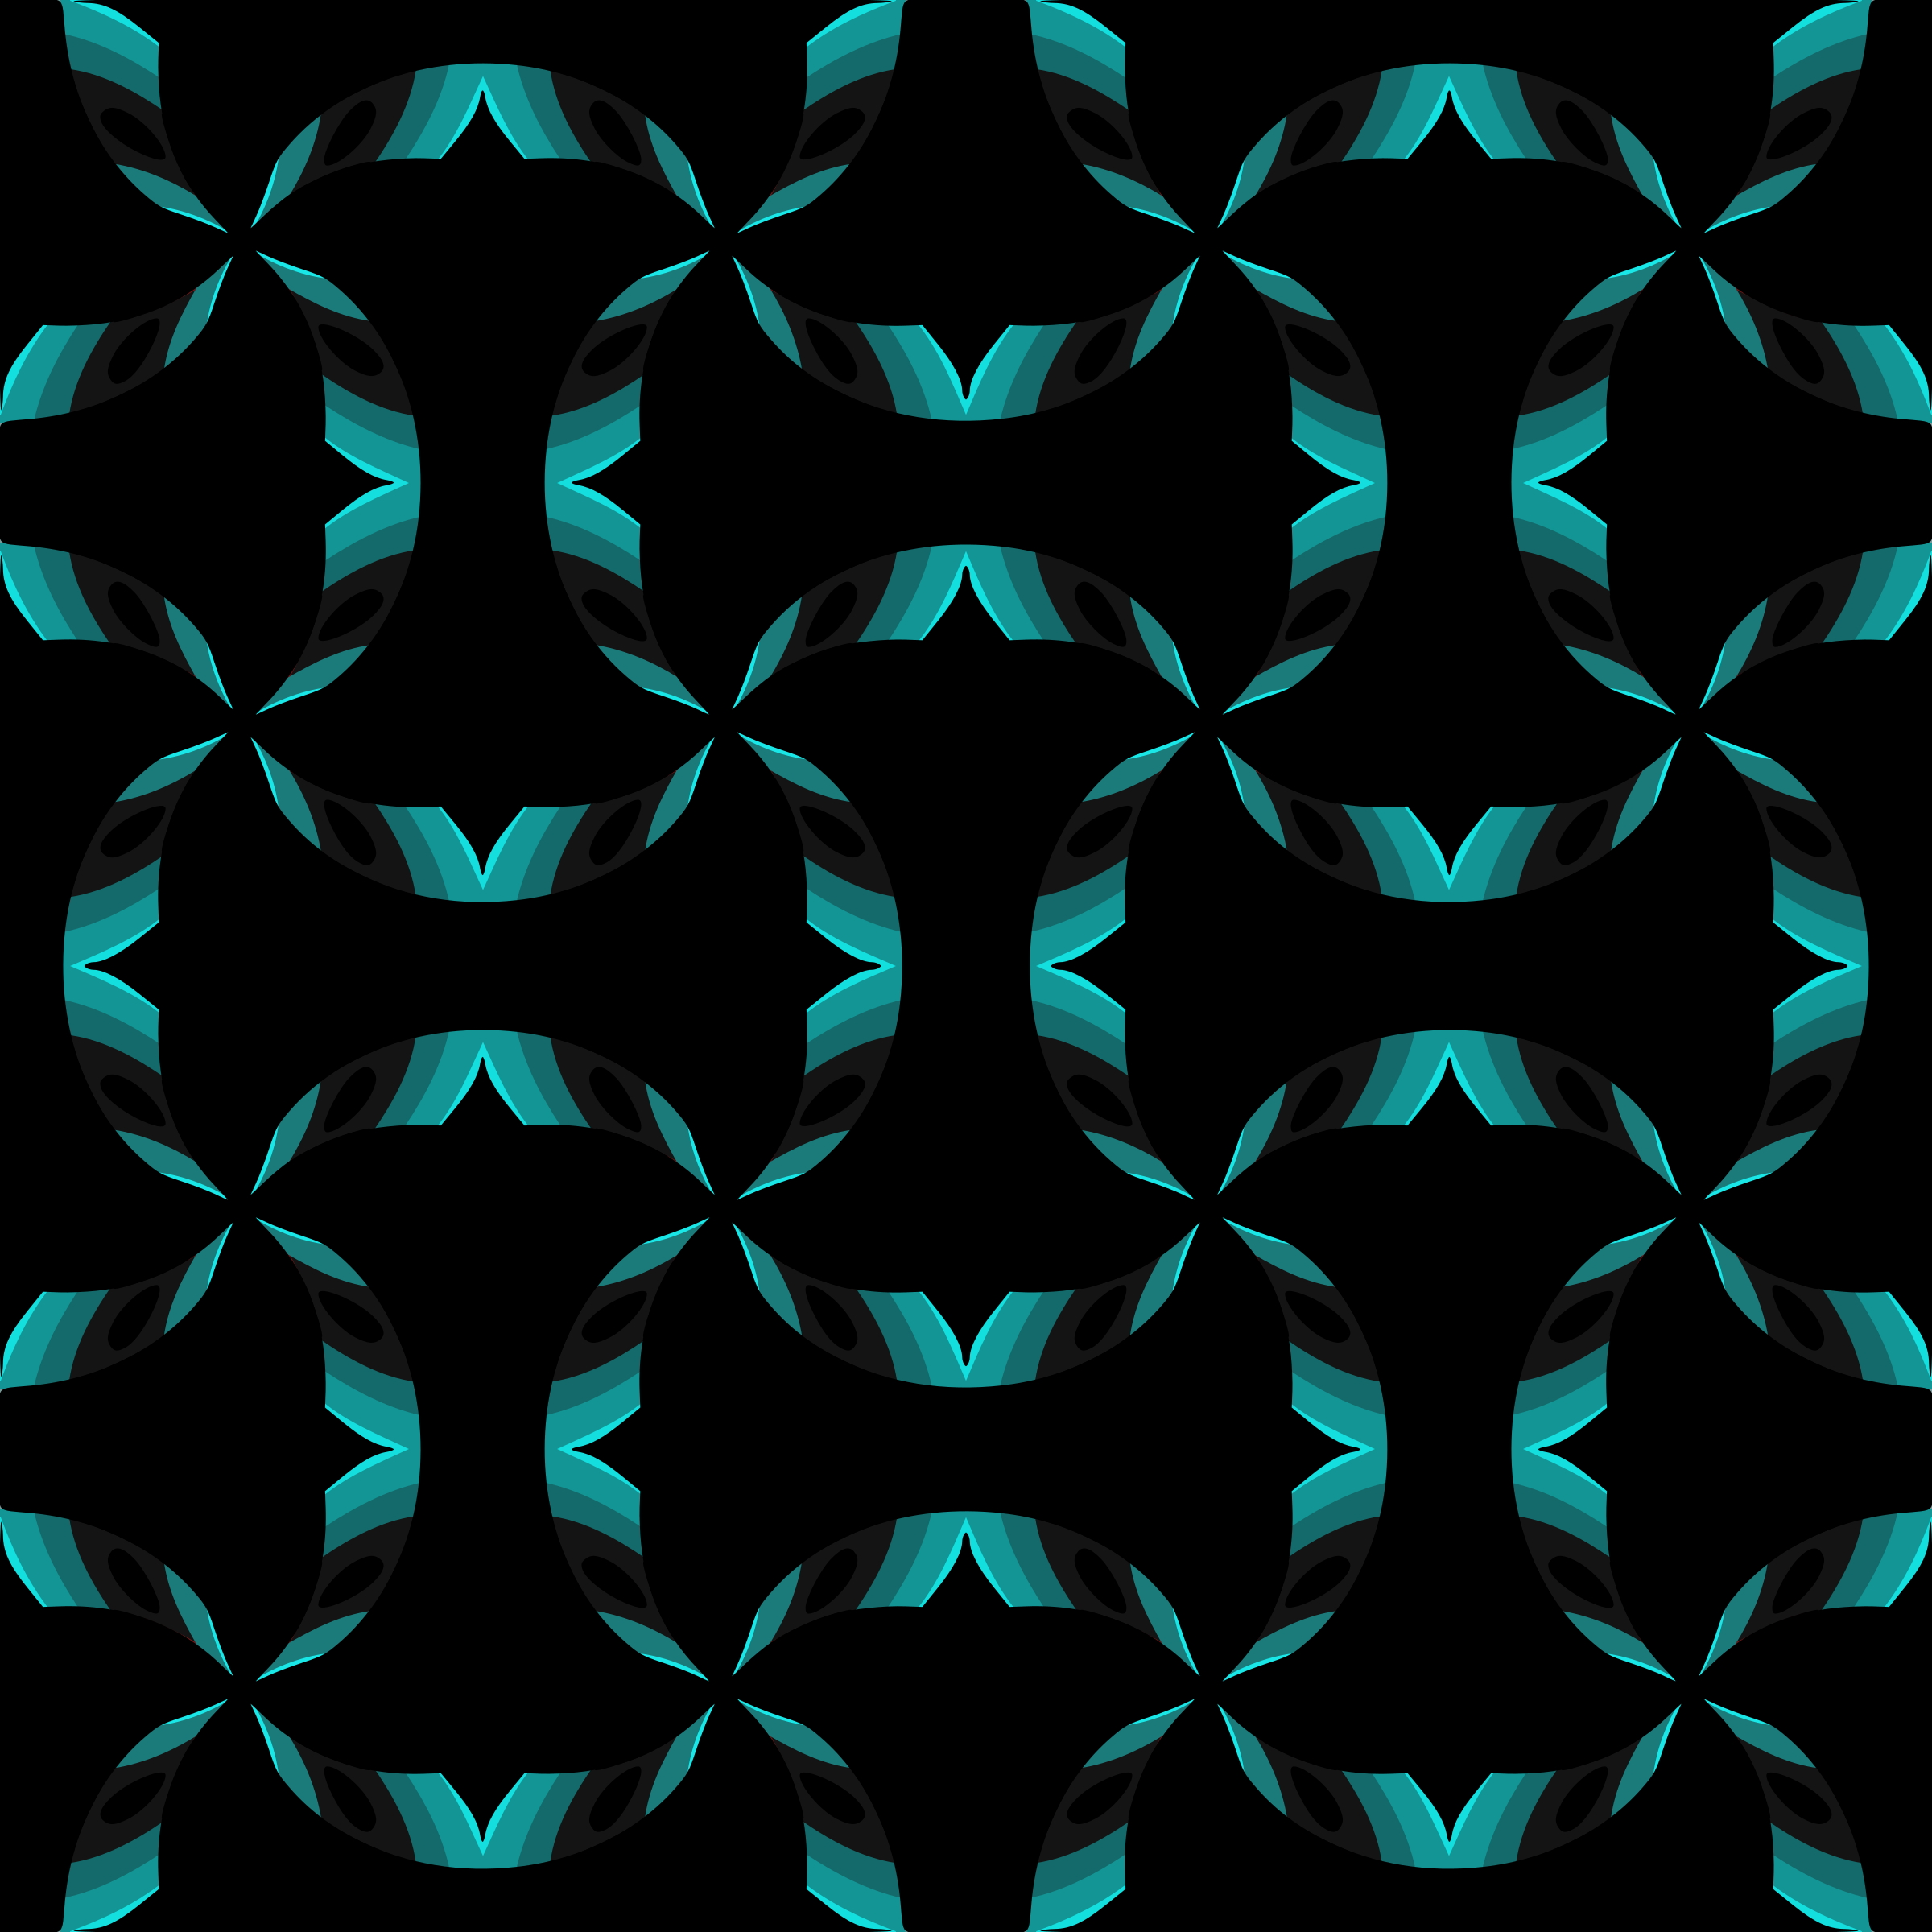 Background pattern 34 by Firkin